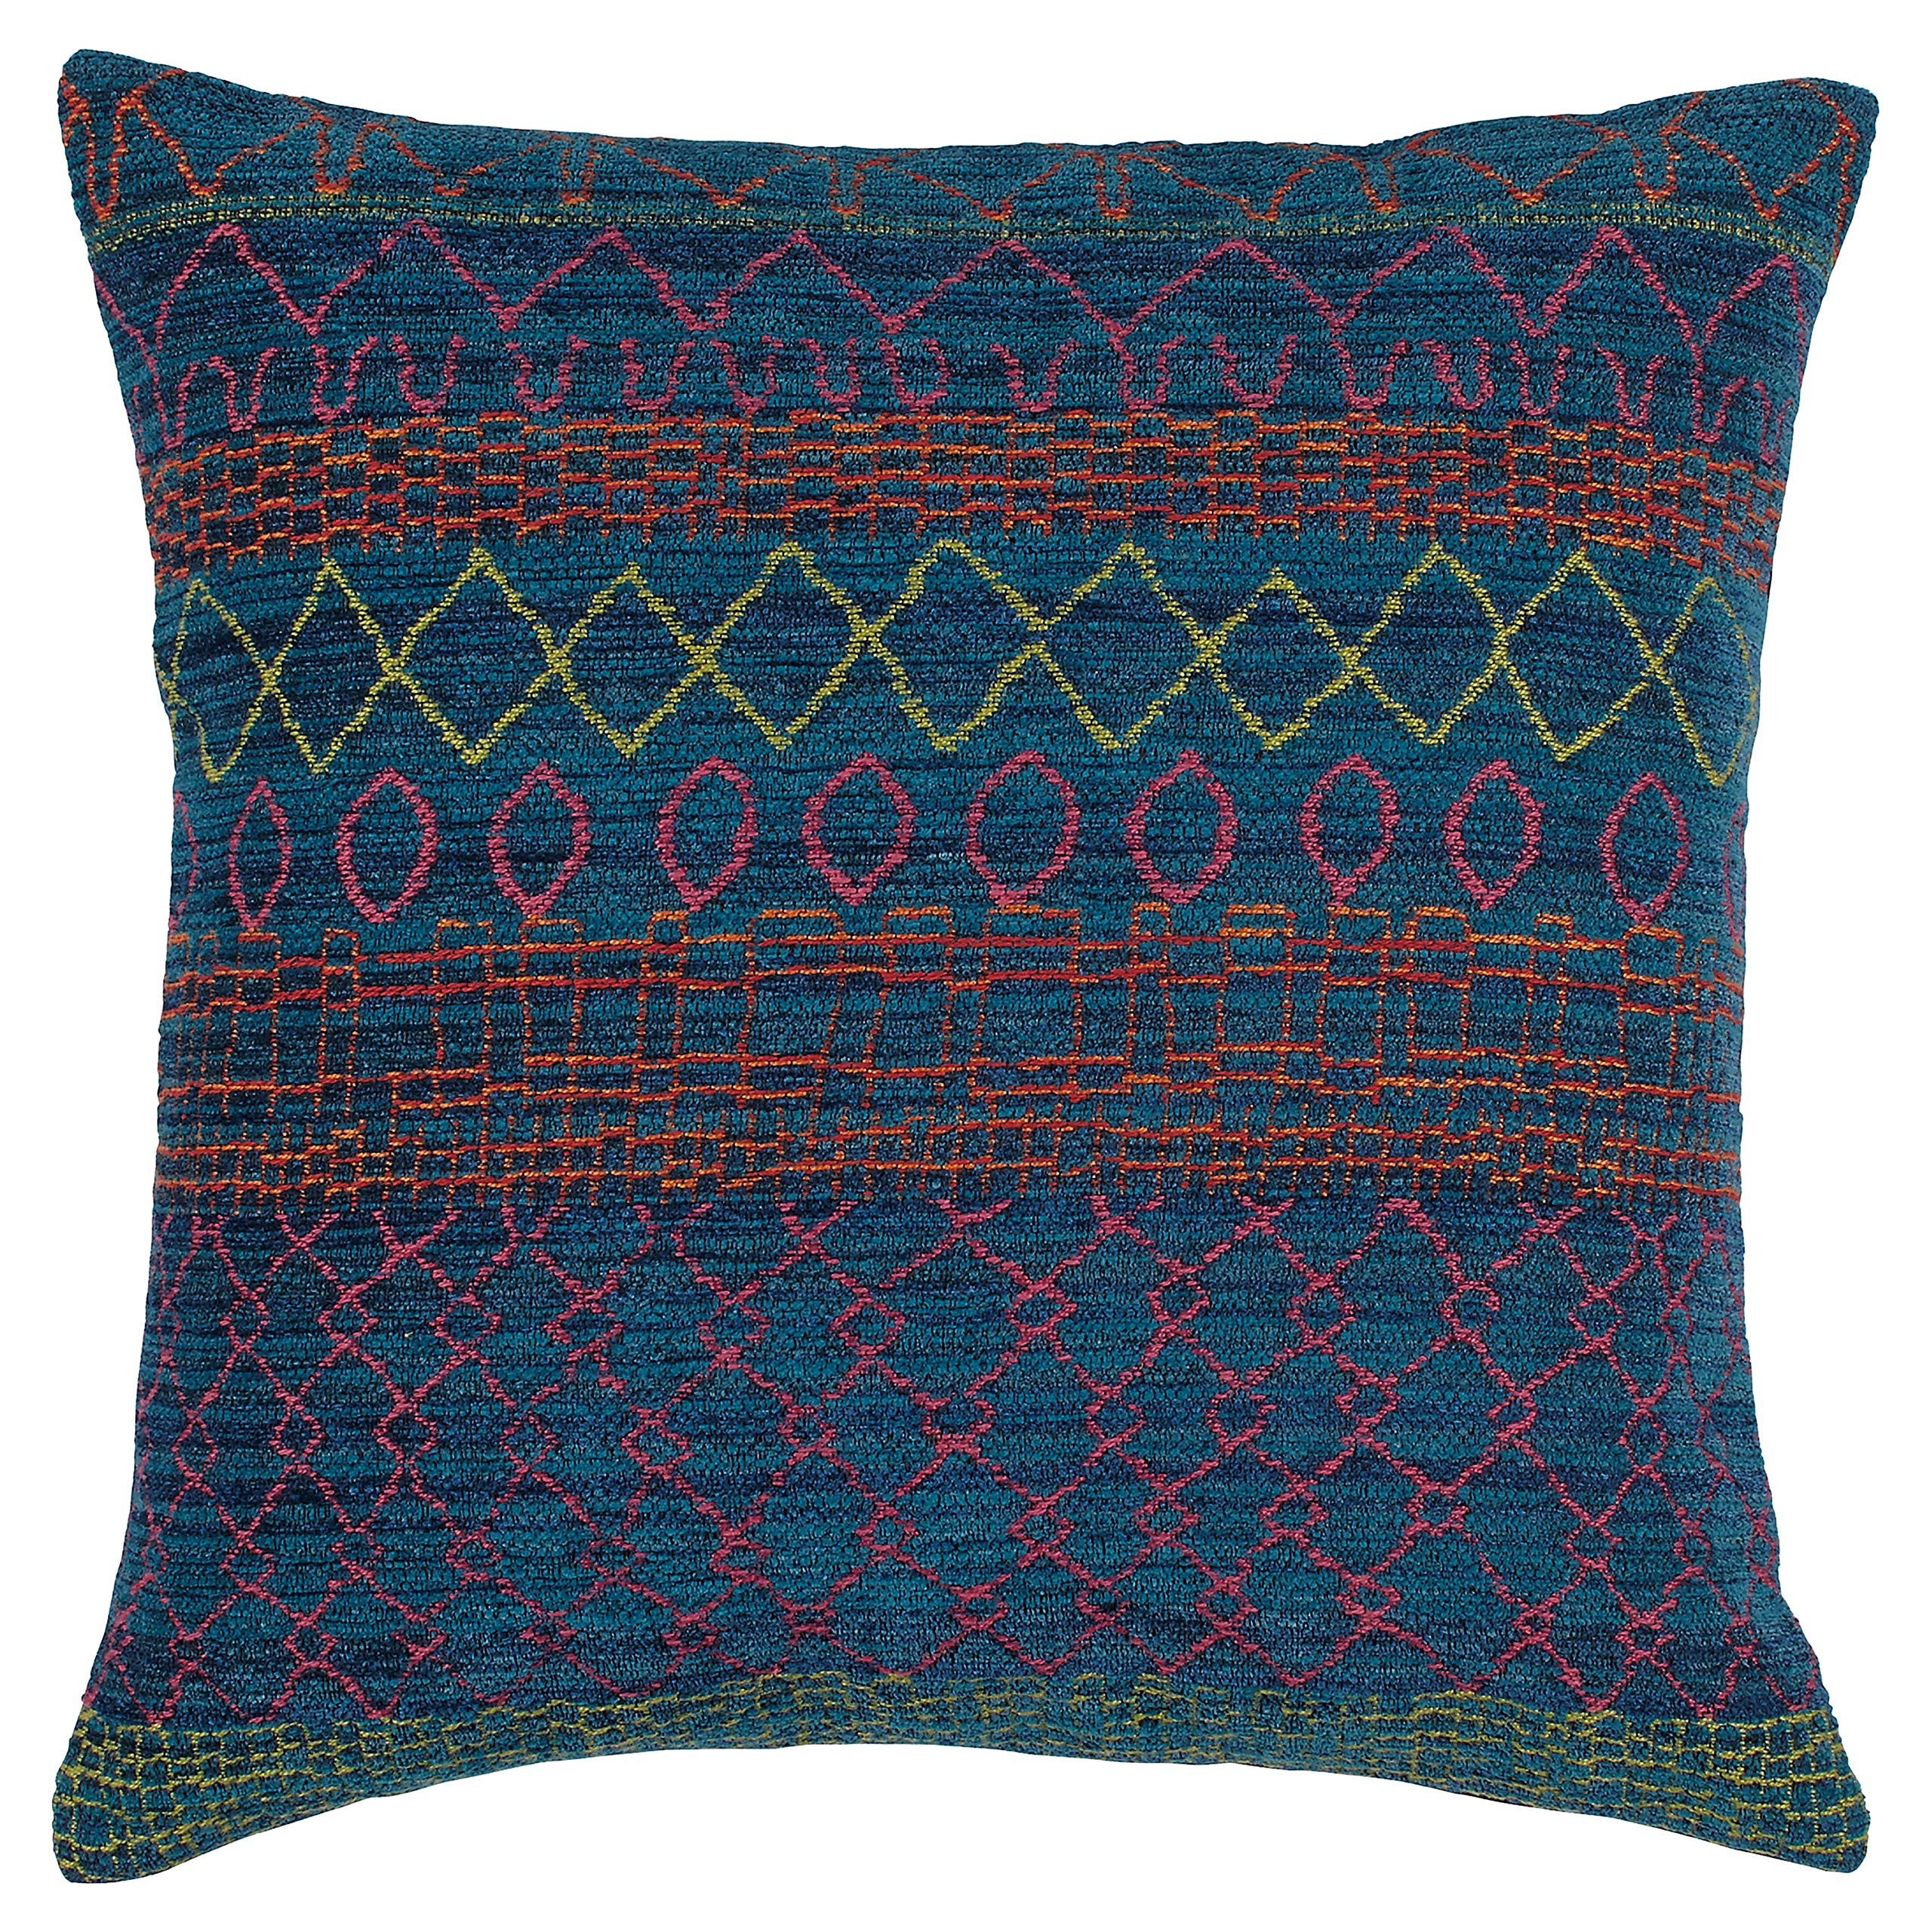 Rivet Tropical Chenille Woven Decorative Throw Pillow, 17'' x 17'', Teal